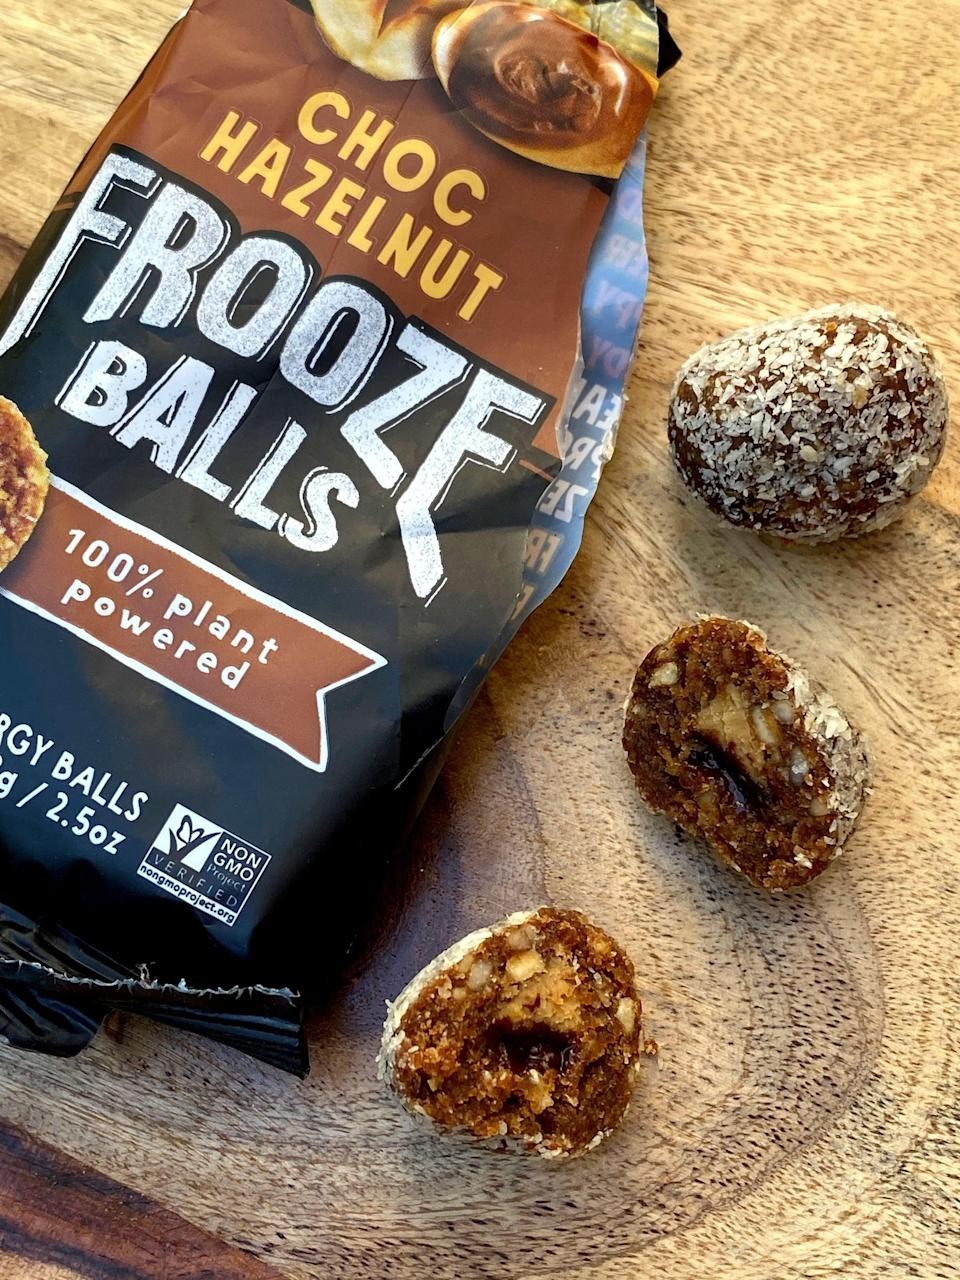 <p>When I bit into one of these Choc Hazenut Frooze Balls, there was a surprise - a creamy hazelnut butter and a fudgy center! It tasted delicious paired with the shredded coconut, and was almost dessert-like. The texture was soft and chewy, and the surprise center made them more special than an ordinary energy ball or bar.</p>